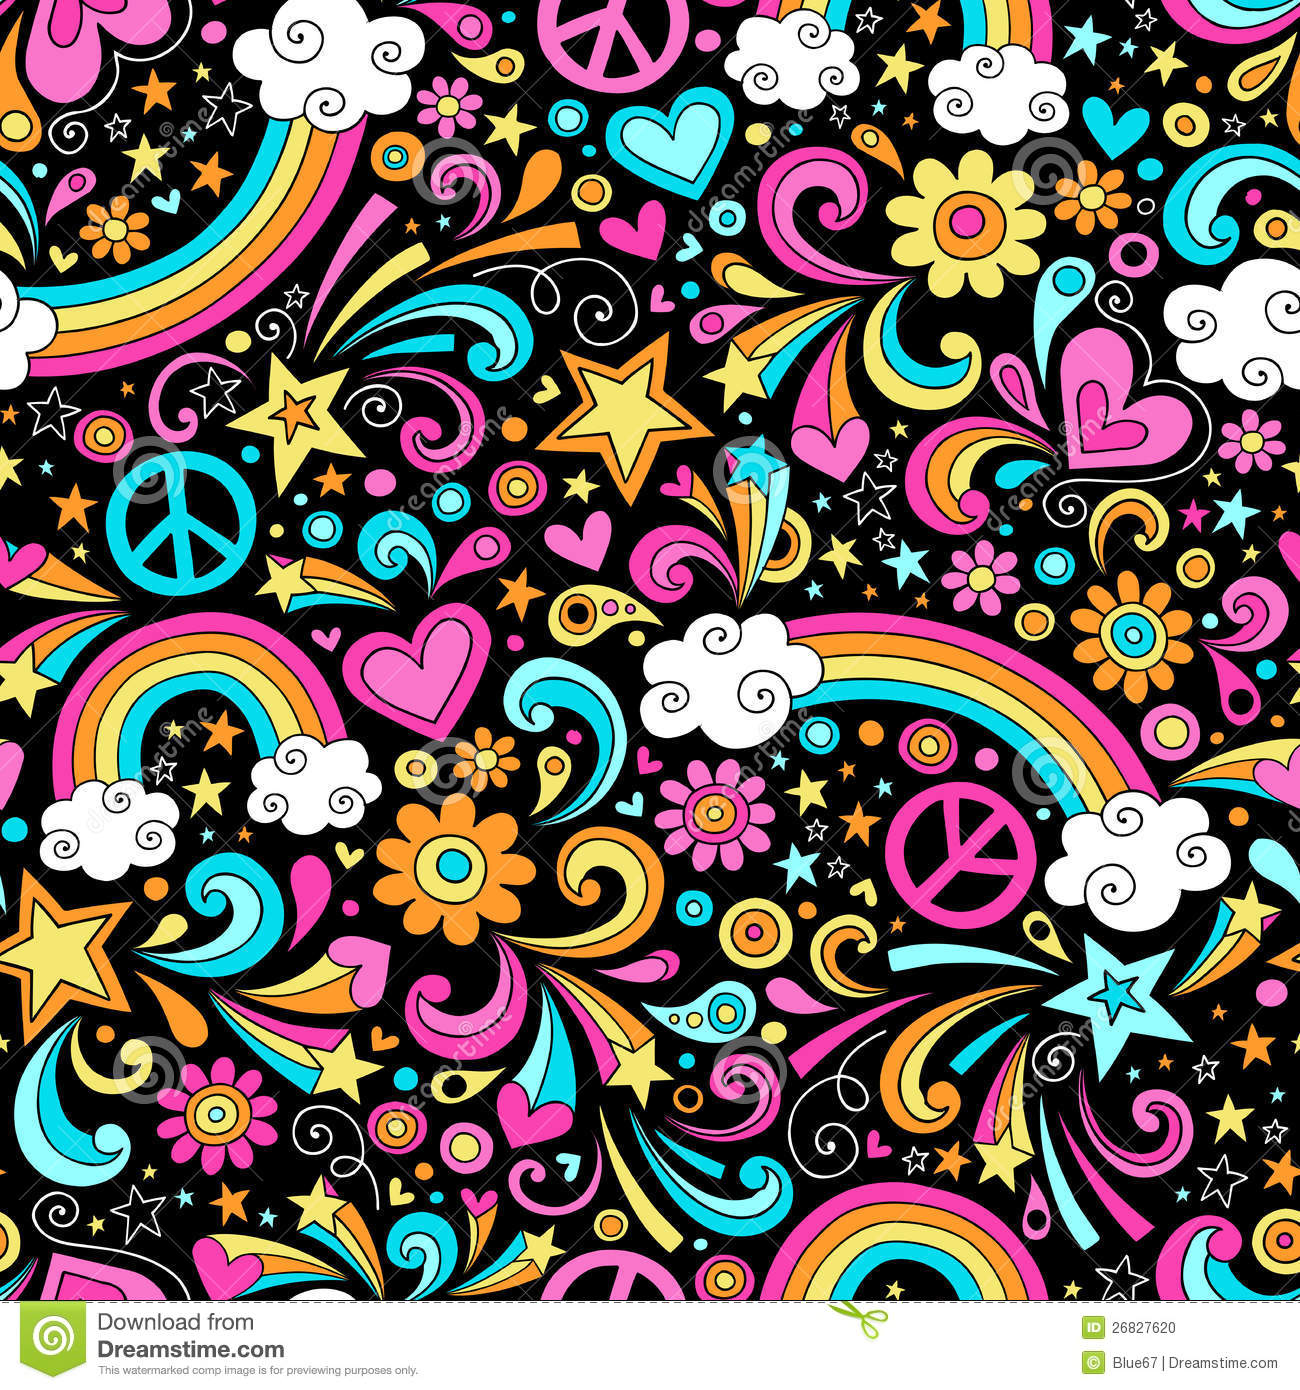 Seamless Groovy Rainbow Peace and Love Pattern Vec